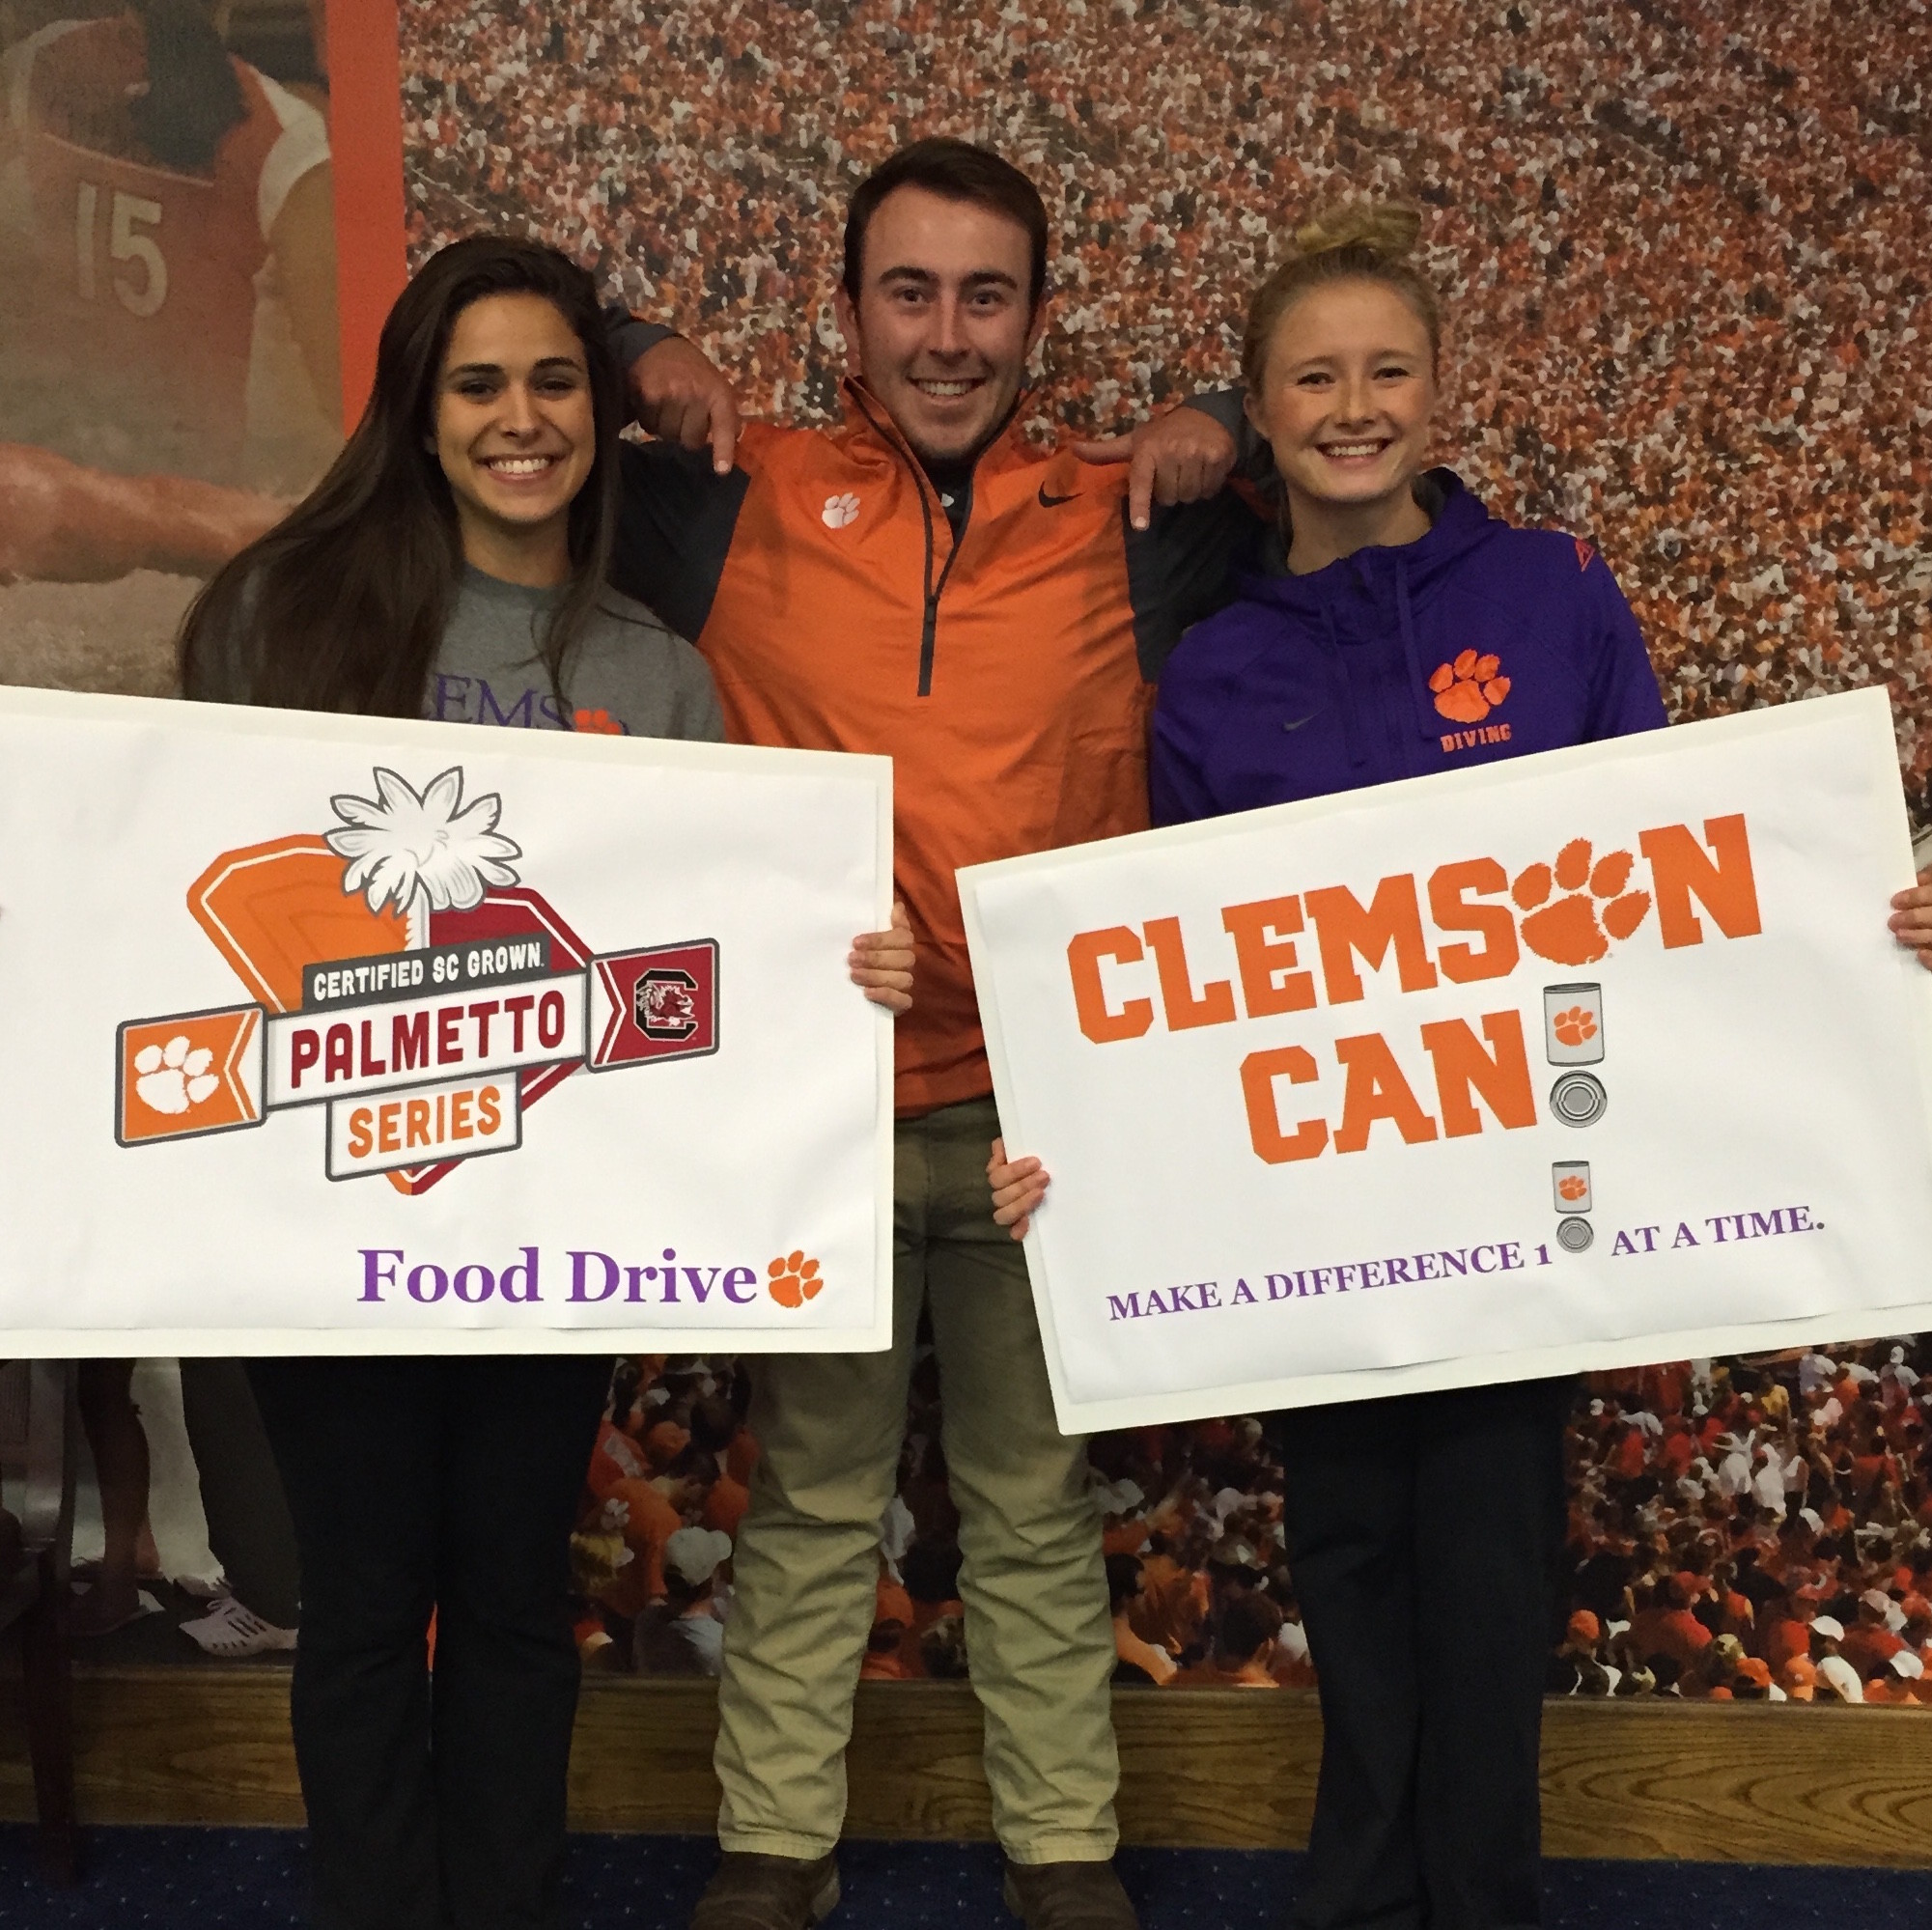 Clemson and USC Kick-off Palmetto Series Food Drive to Benefit Harvest Hope